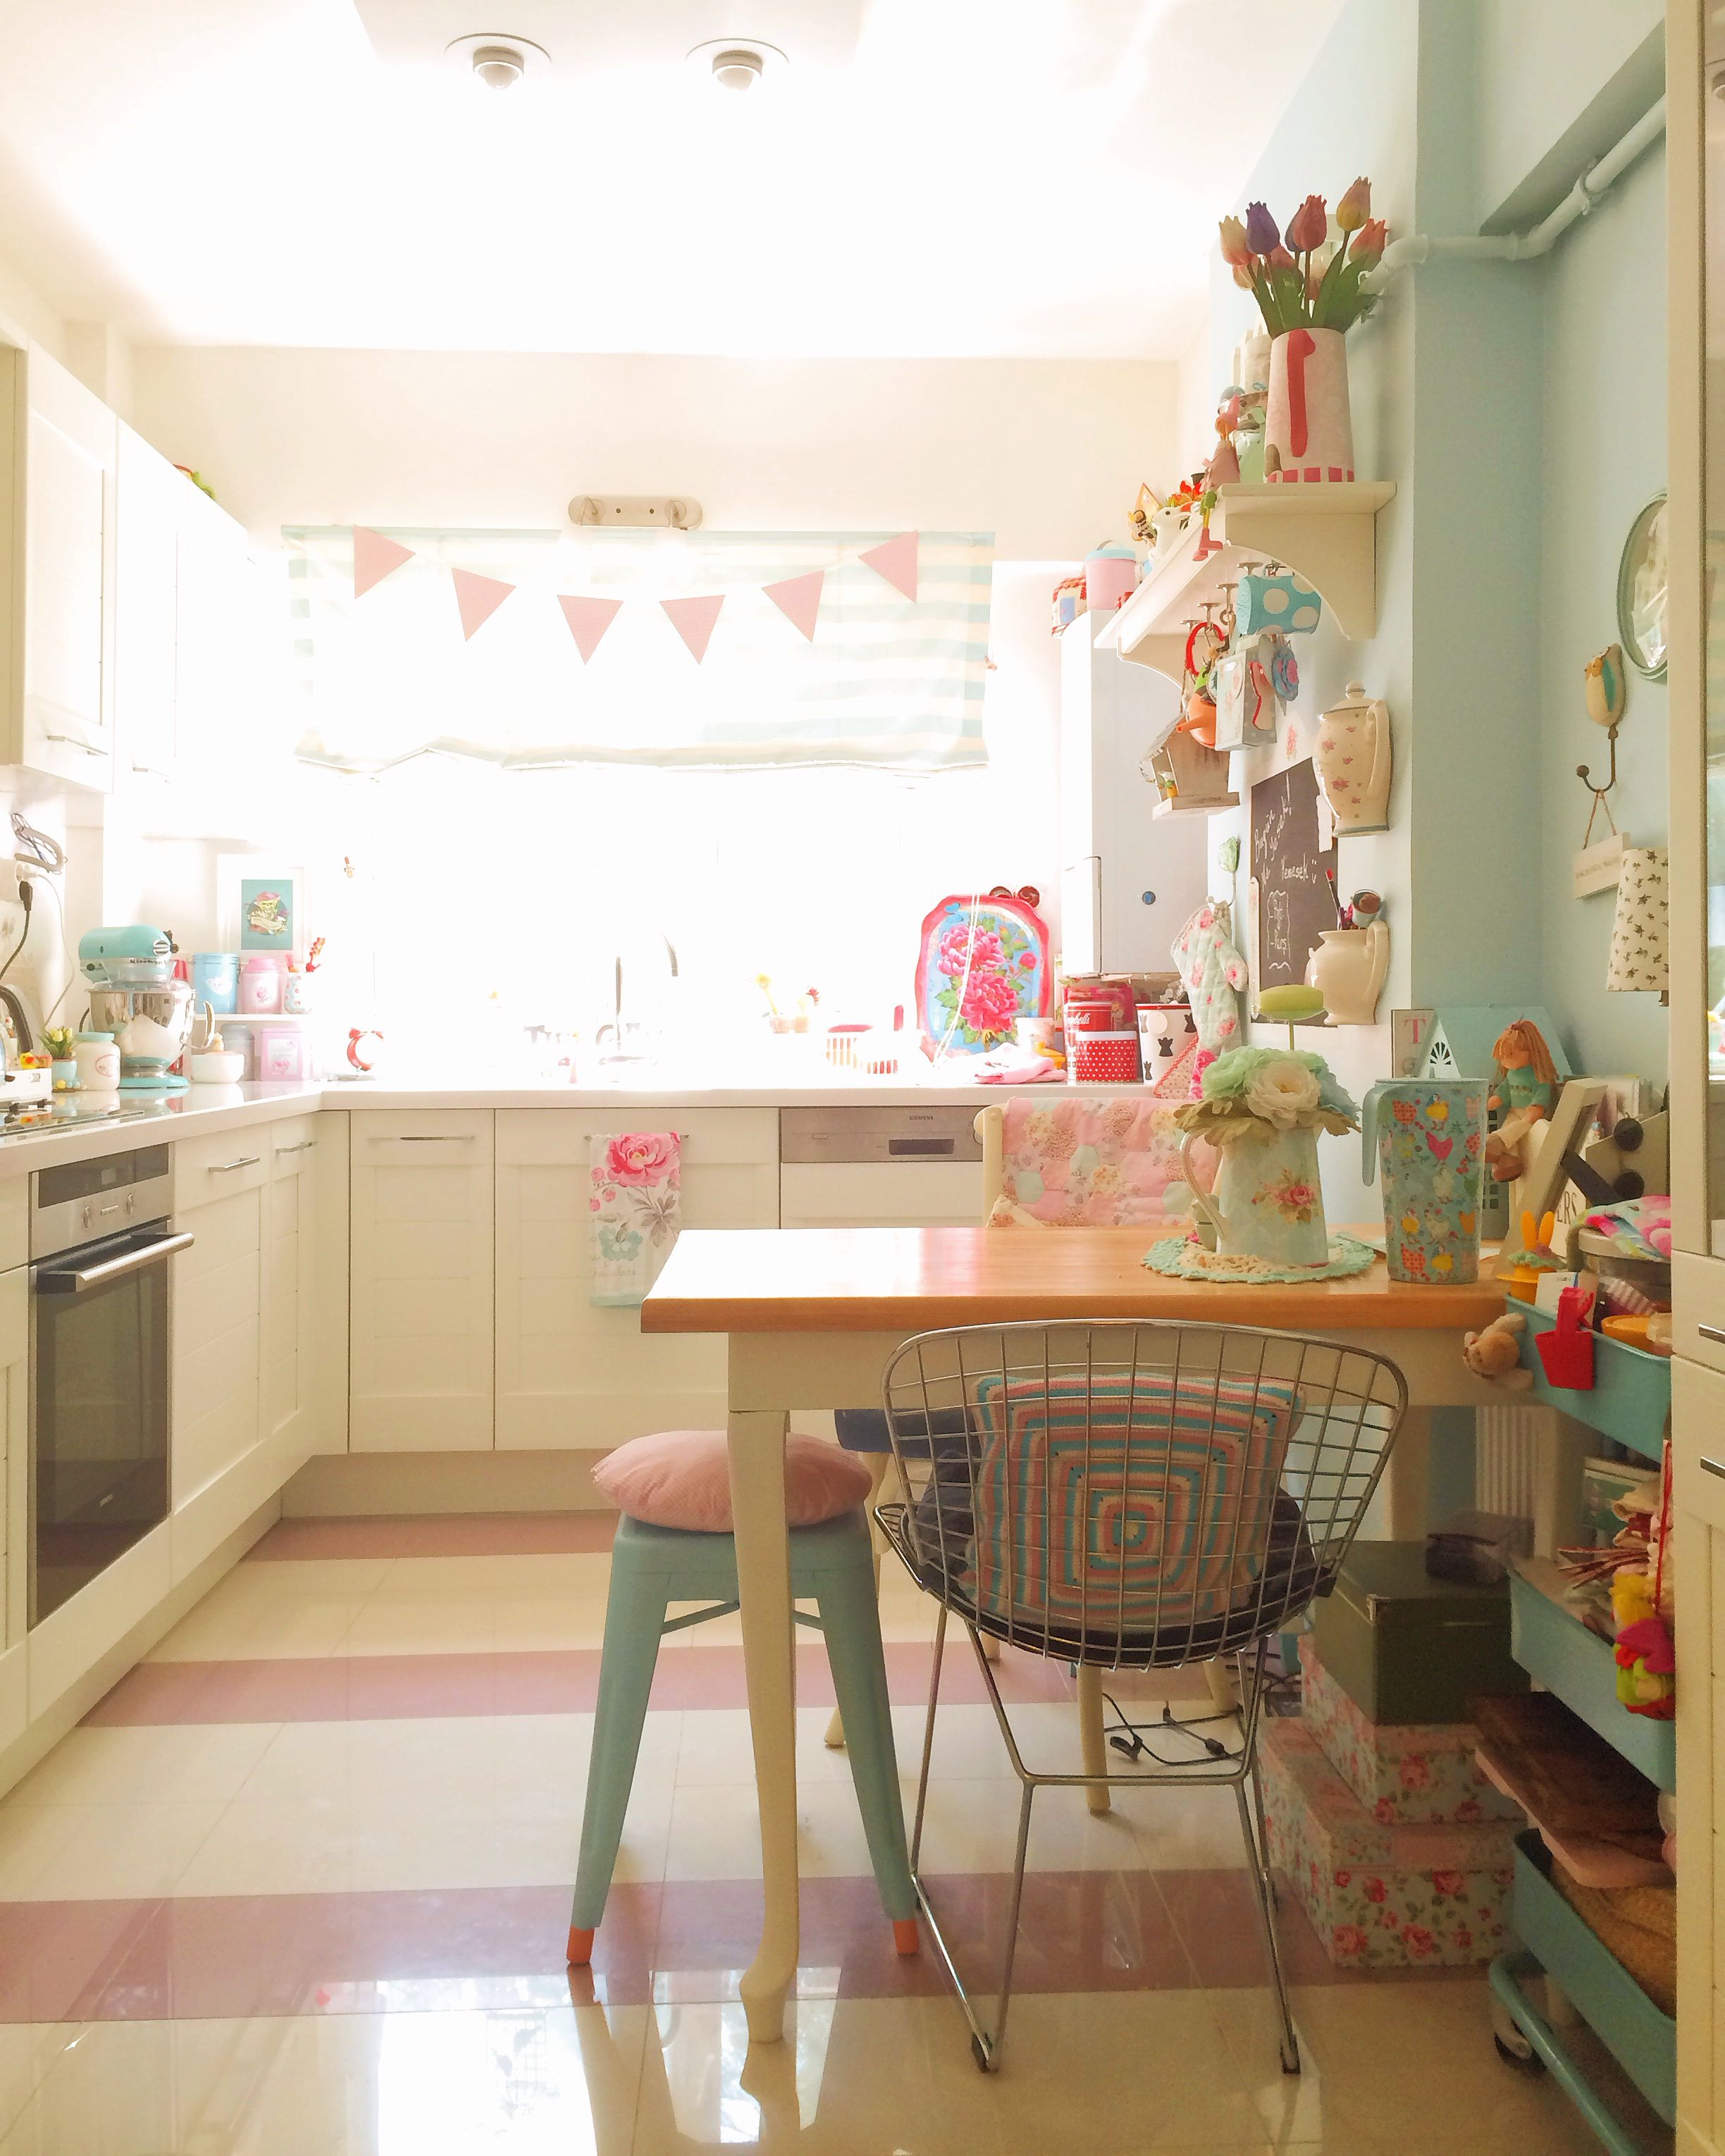 Mint green and pink vintage cottage kitchen.